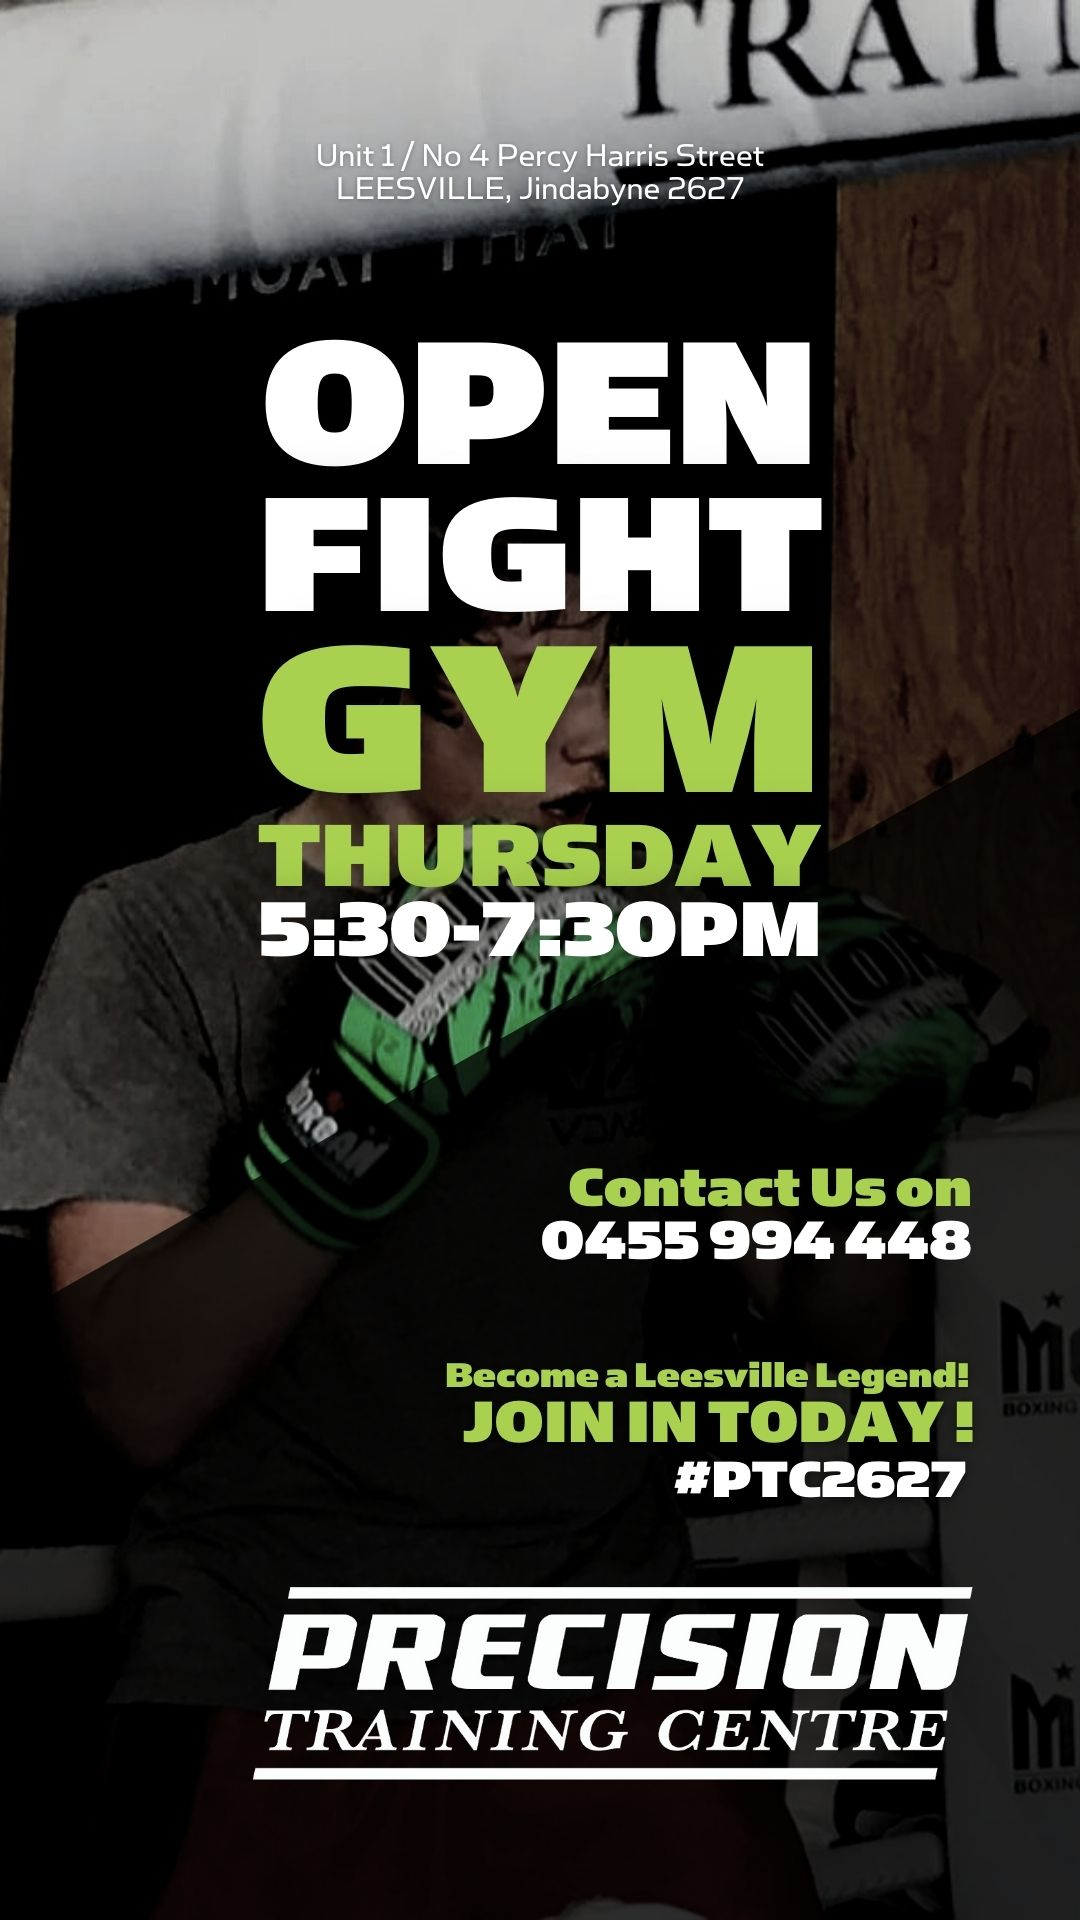 OPENFIGHTGYMTHURS